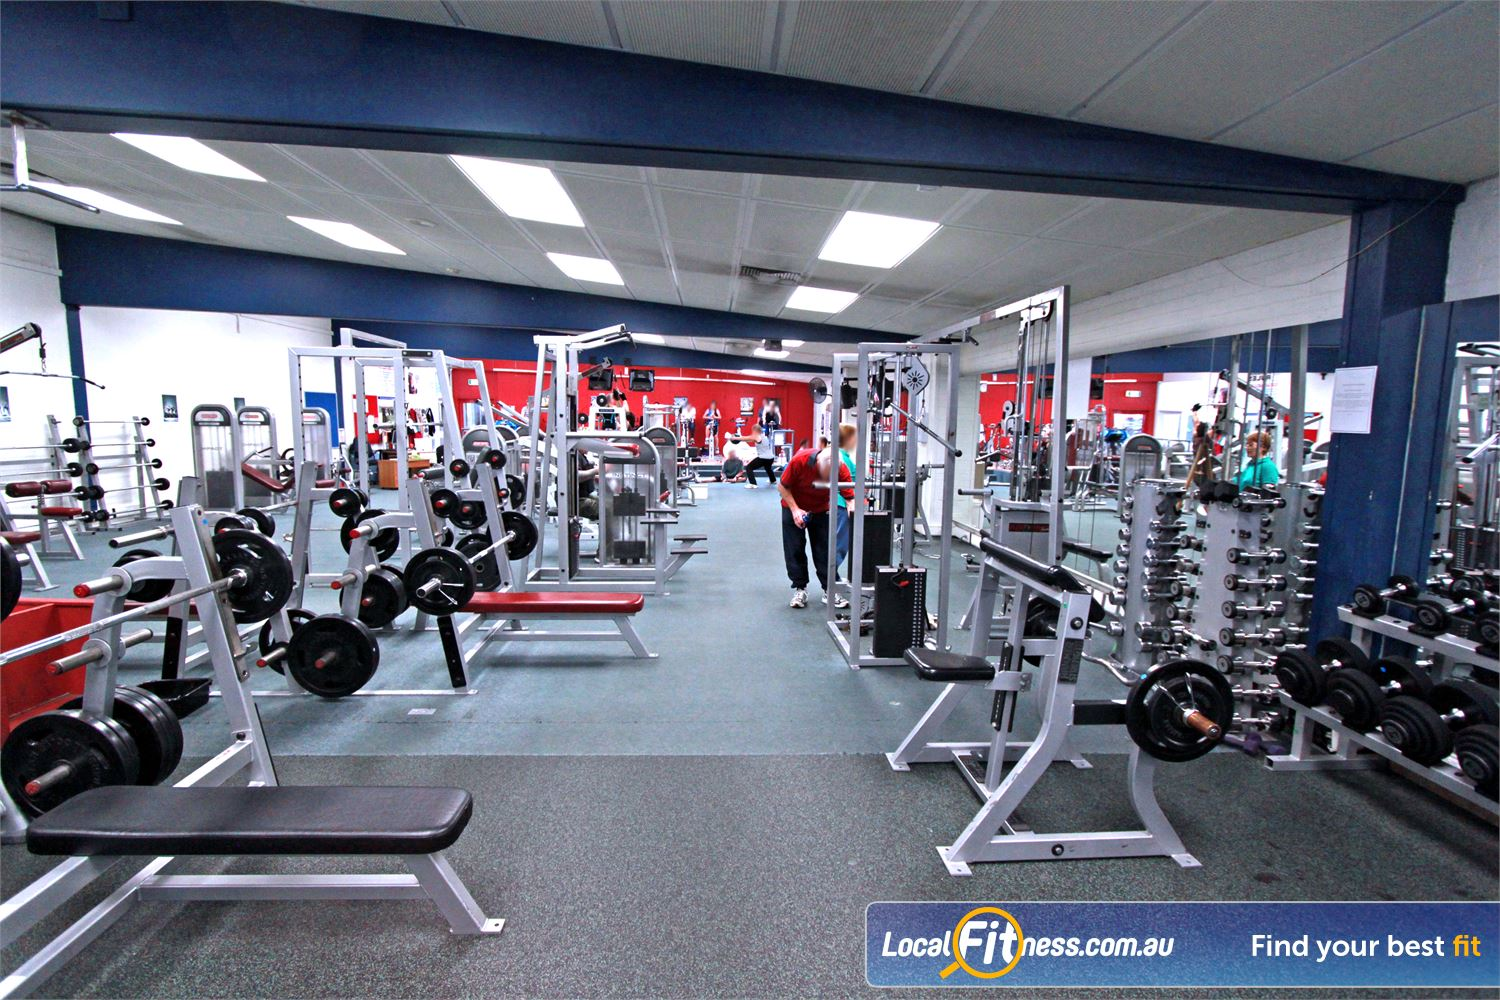 East Keilor Leisure Centre Keilor East Our East Keilor gym provides health and fitness for the whole community.